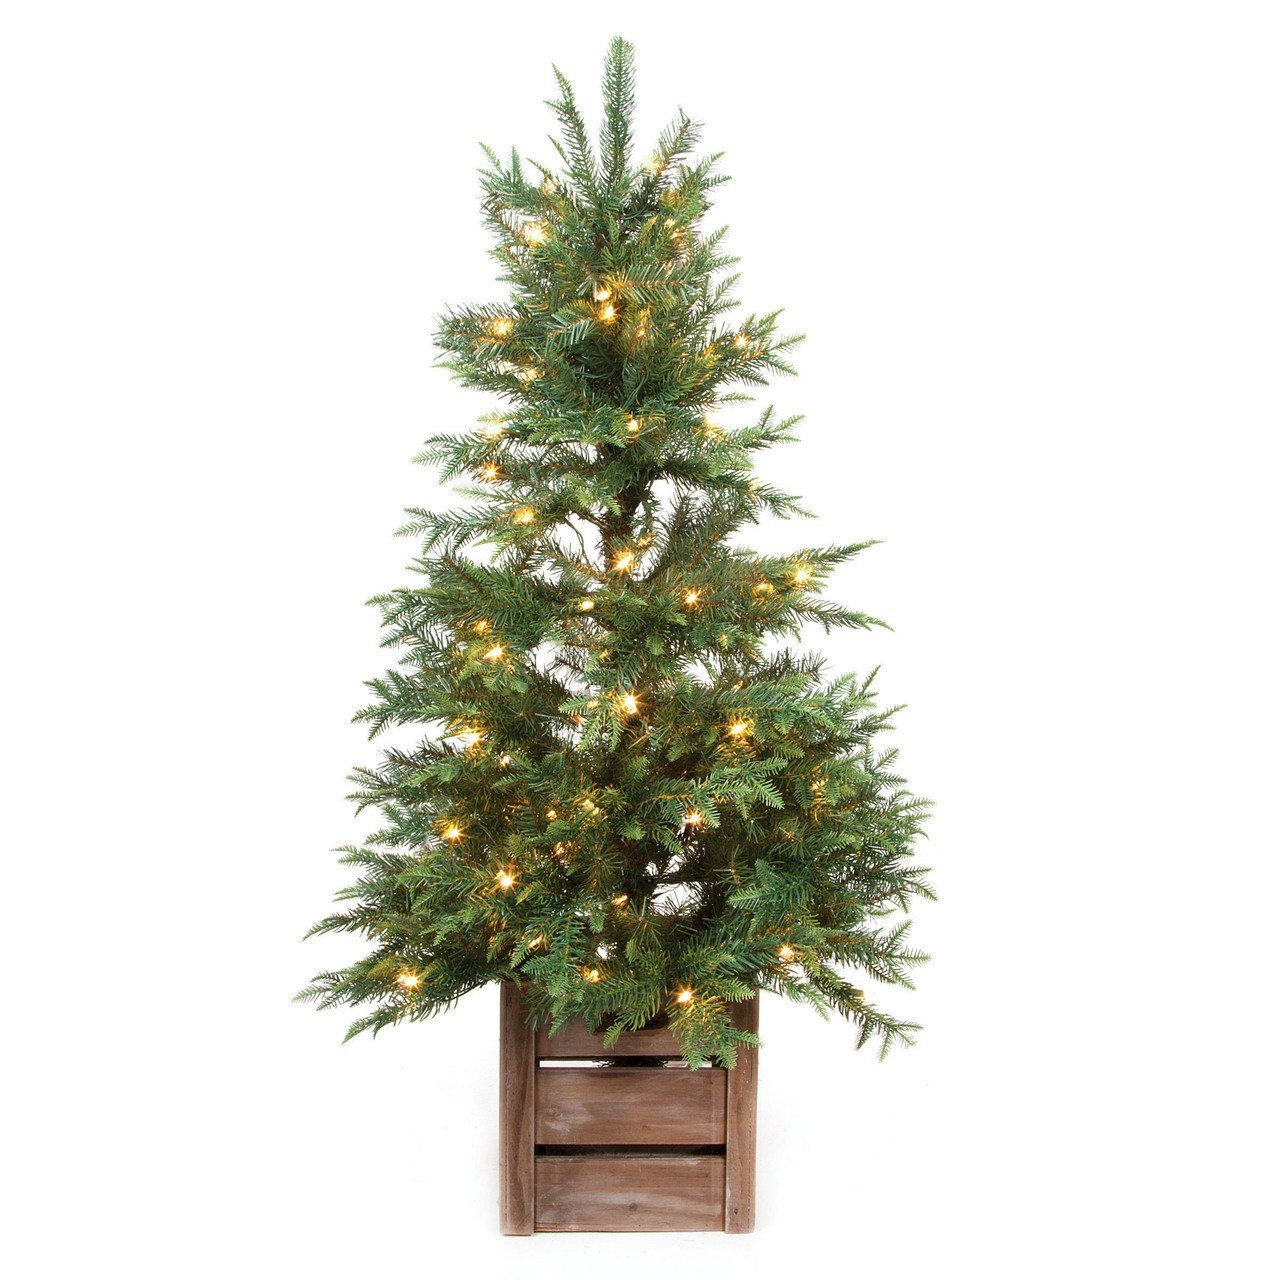 4' Prelit Christmas Tree in Rustic Stand 30010625